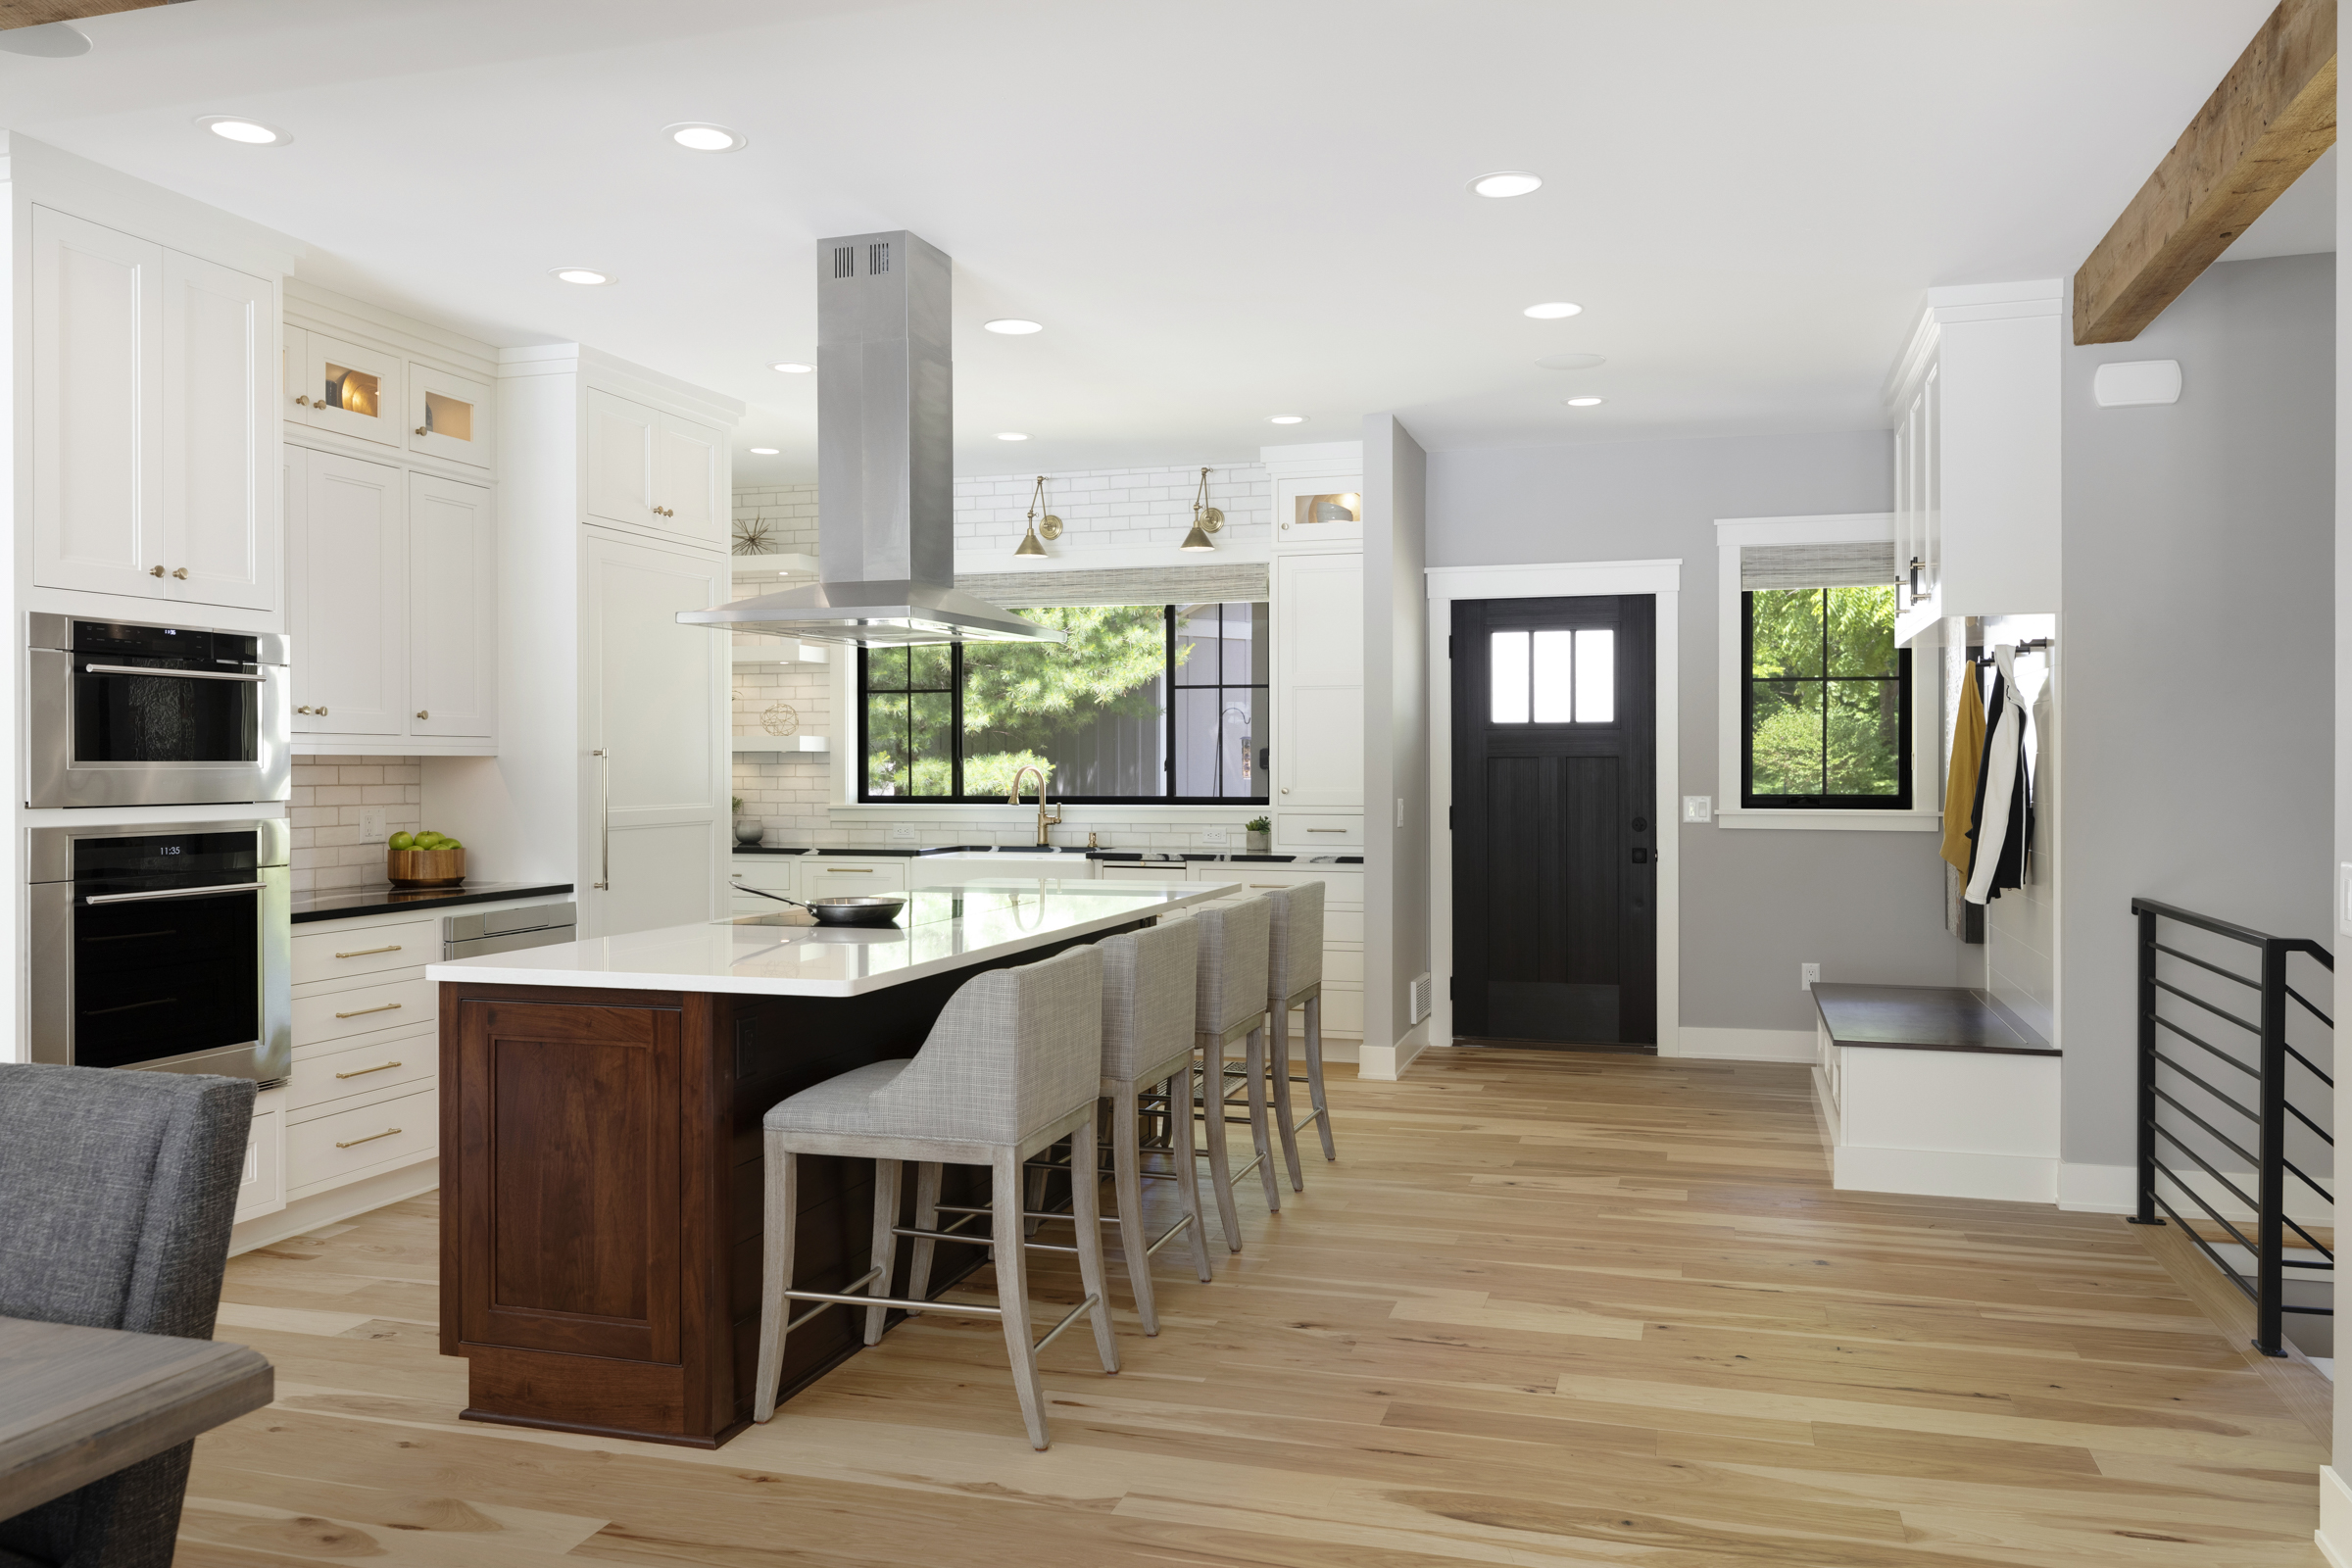 Large open kitchen with warm wood island and large windows. | Crystal Kitchen and Bathroom Remodelers